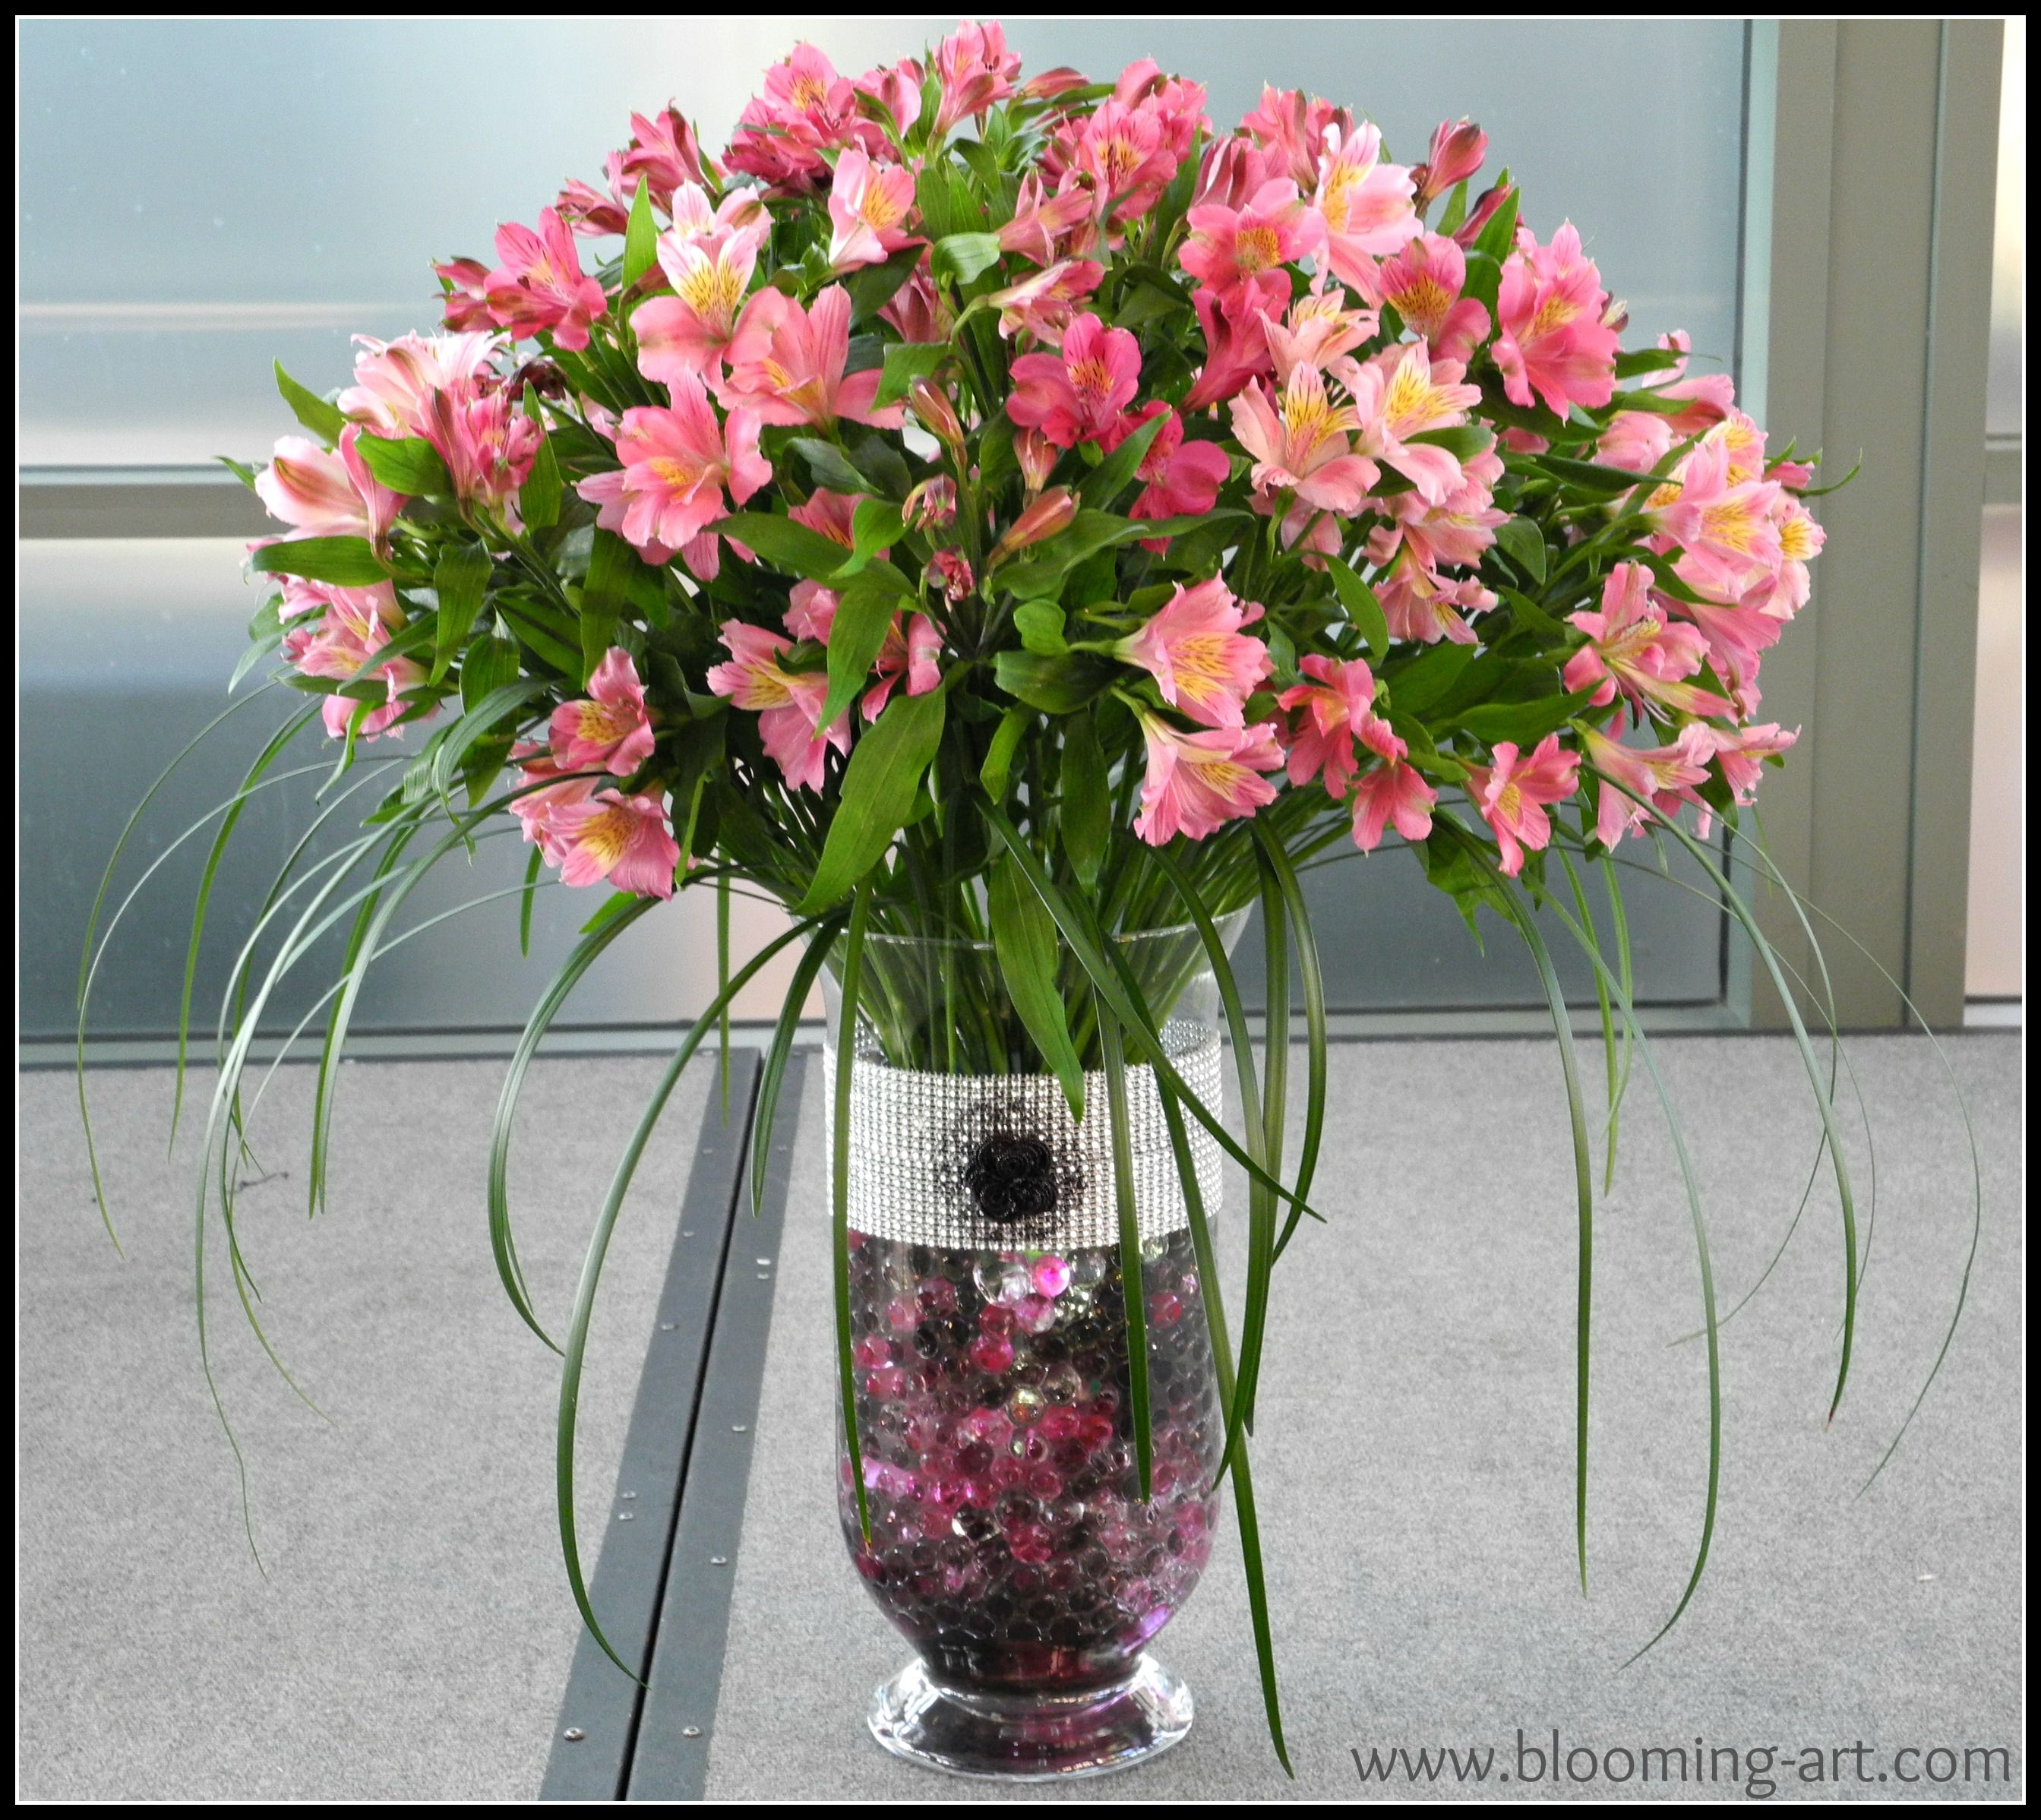 Big and dramatic alstroemeria arrangement in deco beads www welcome to blooming art floral design services of san diego where flowers and art come together for weddings parties and events of any size izmirmasajfo